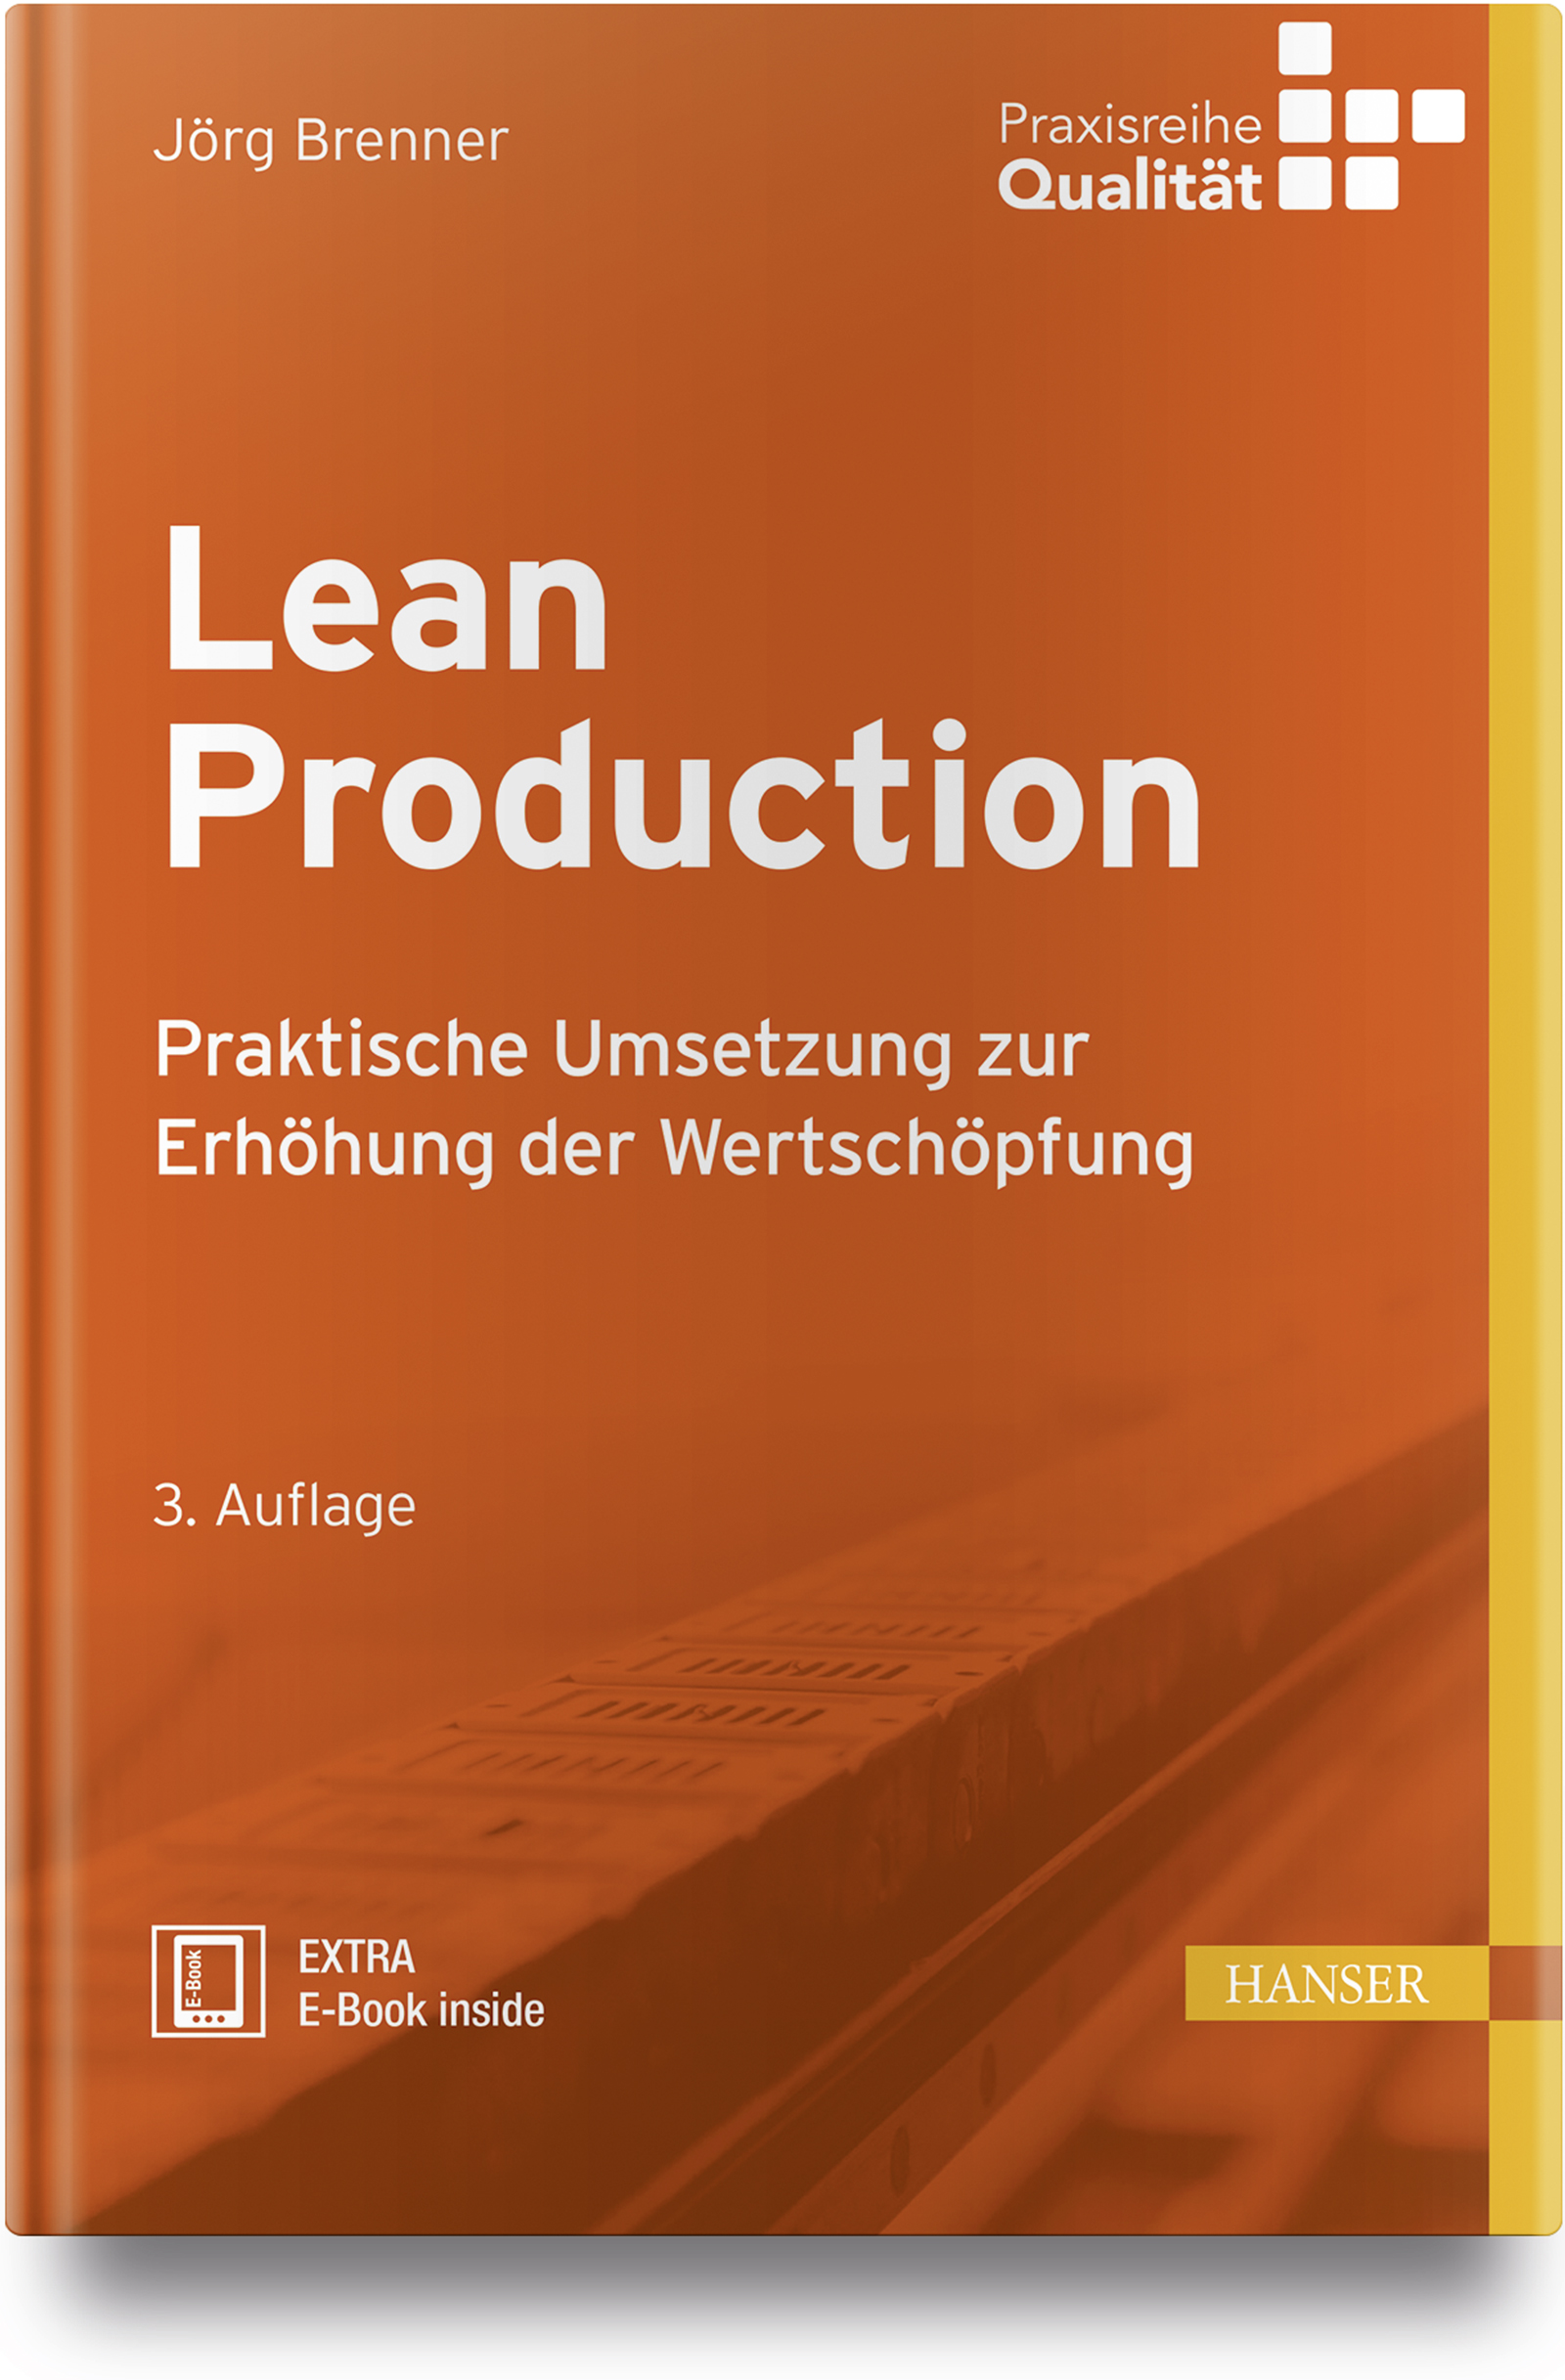 Brenner, Lean Production, 978-3-446-45664-8